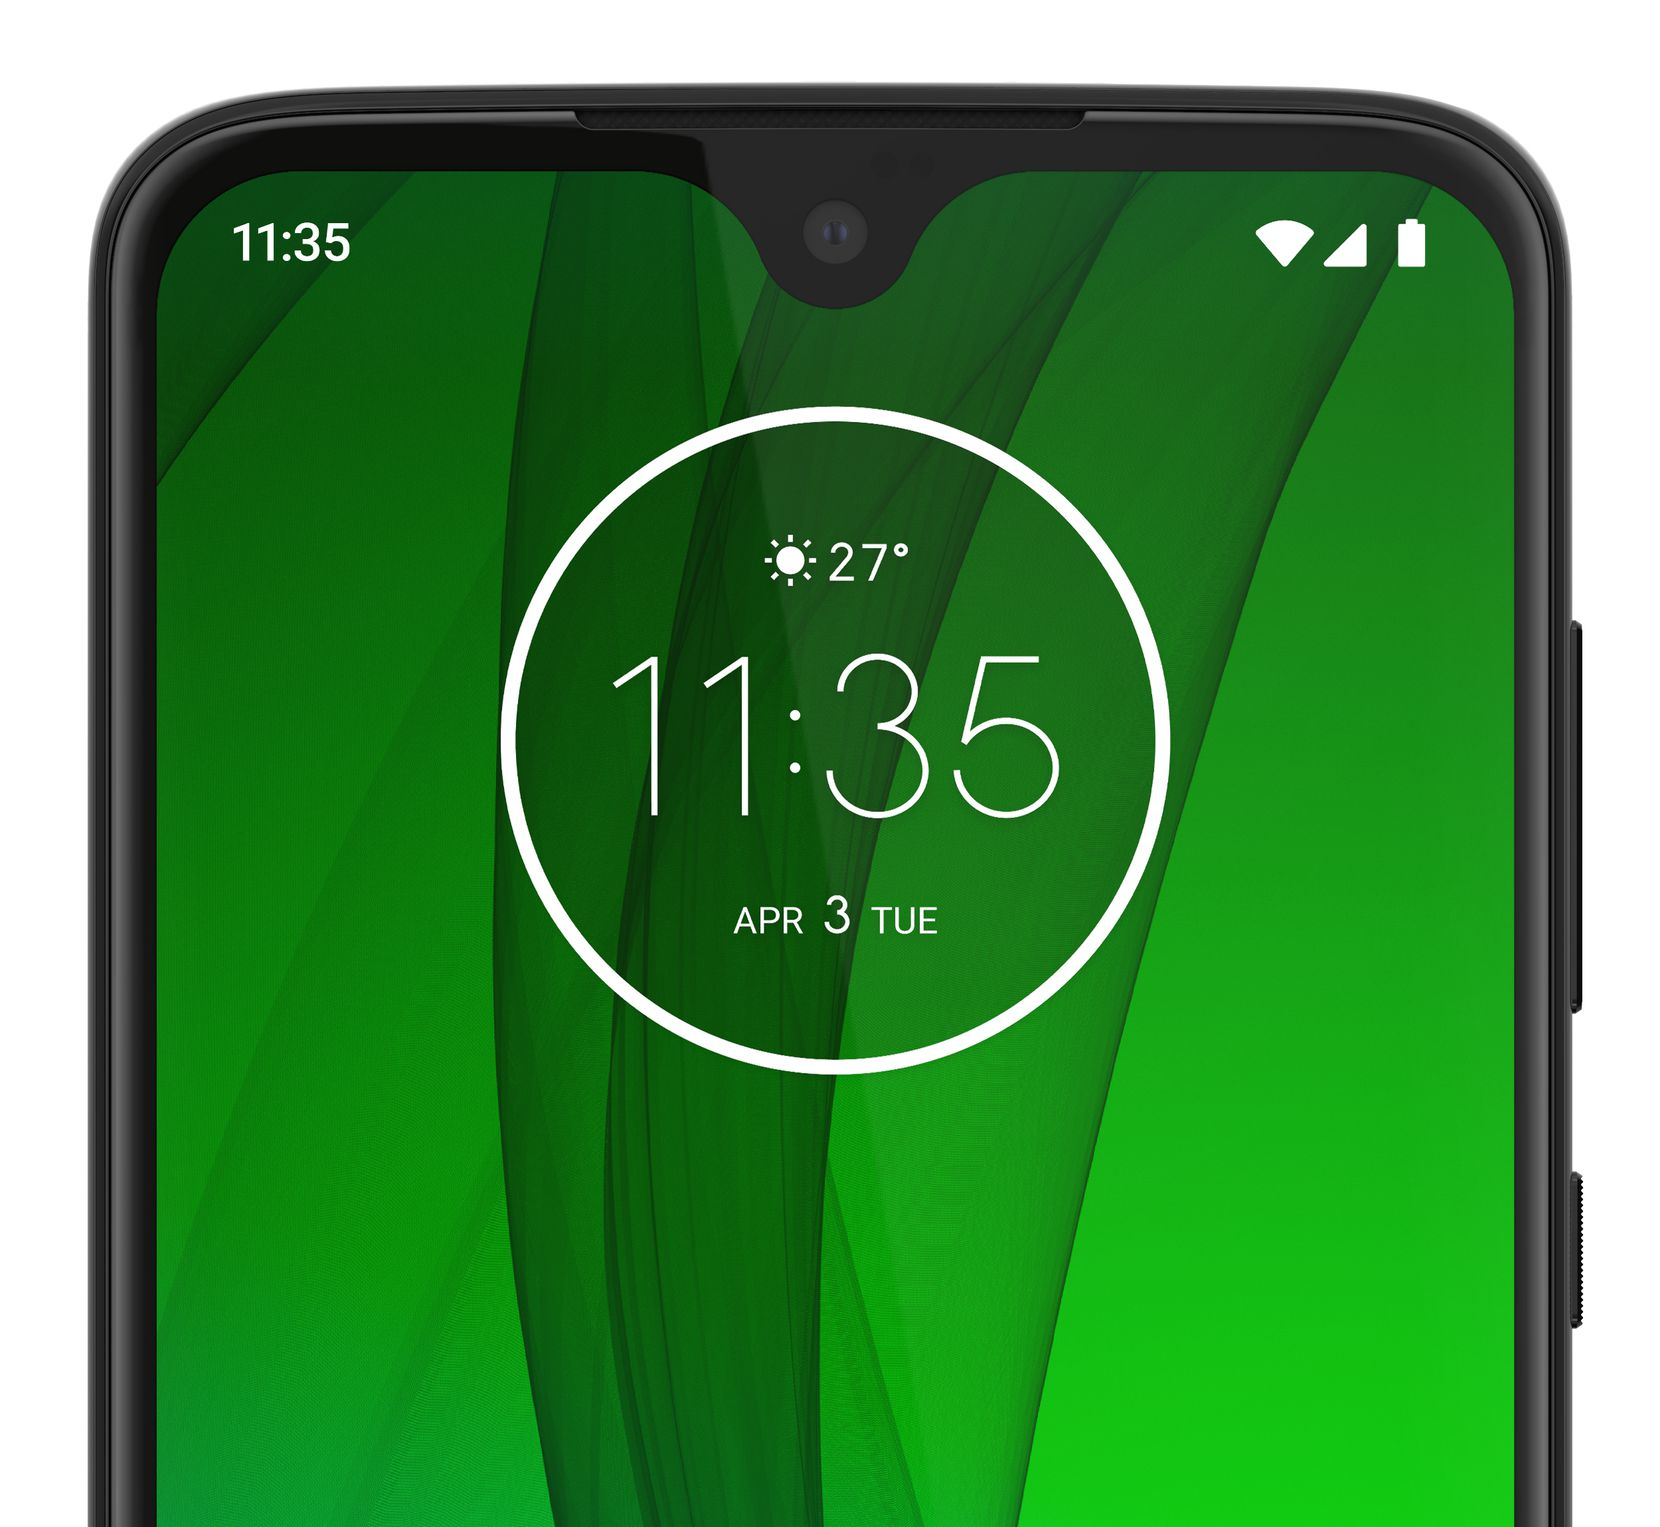 The front camera of the Moto G7 is in a very small notch on the top of the screen.